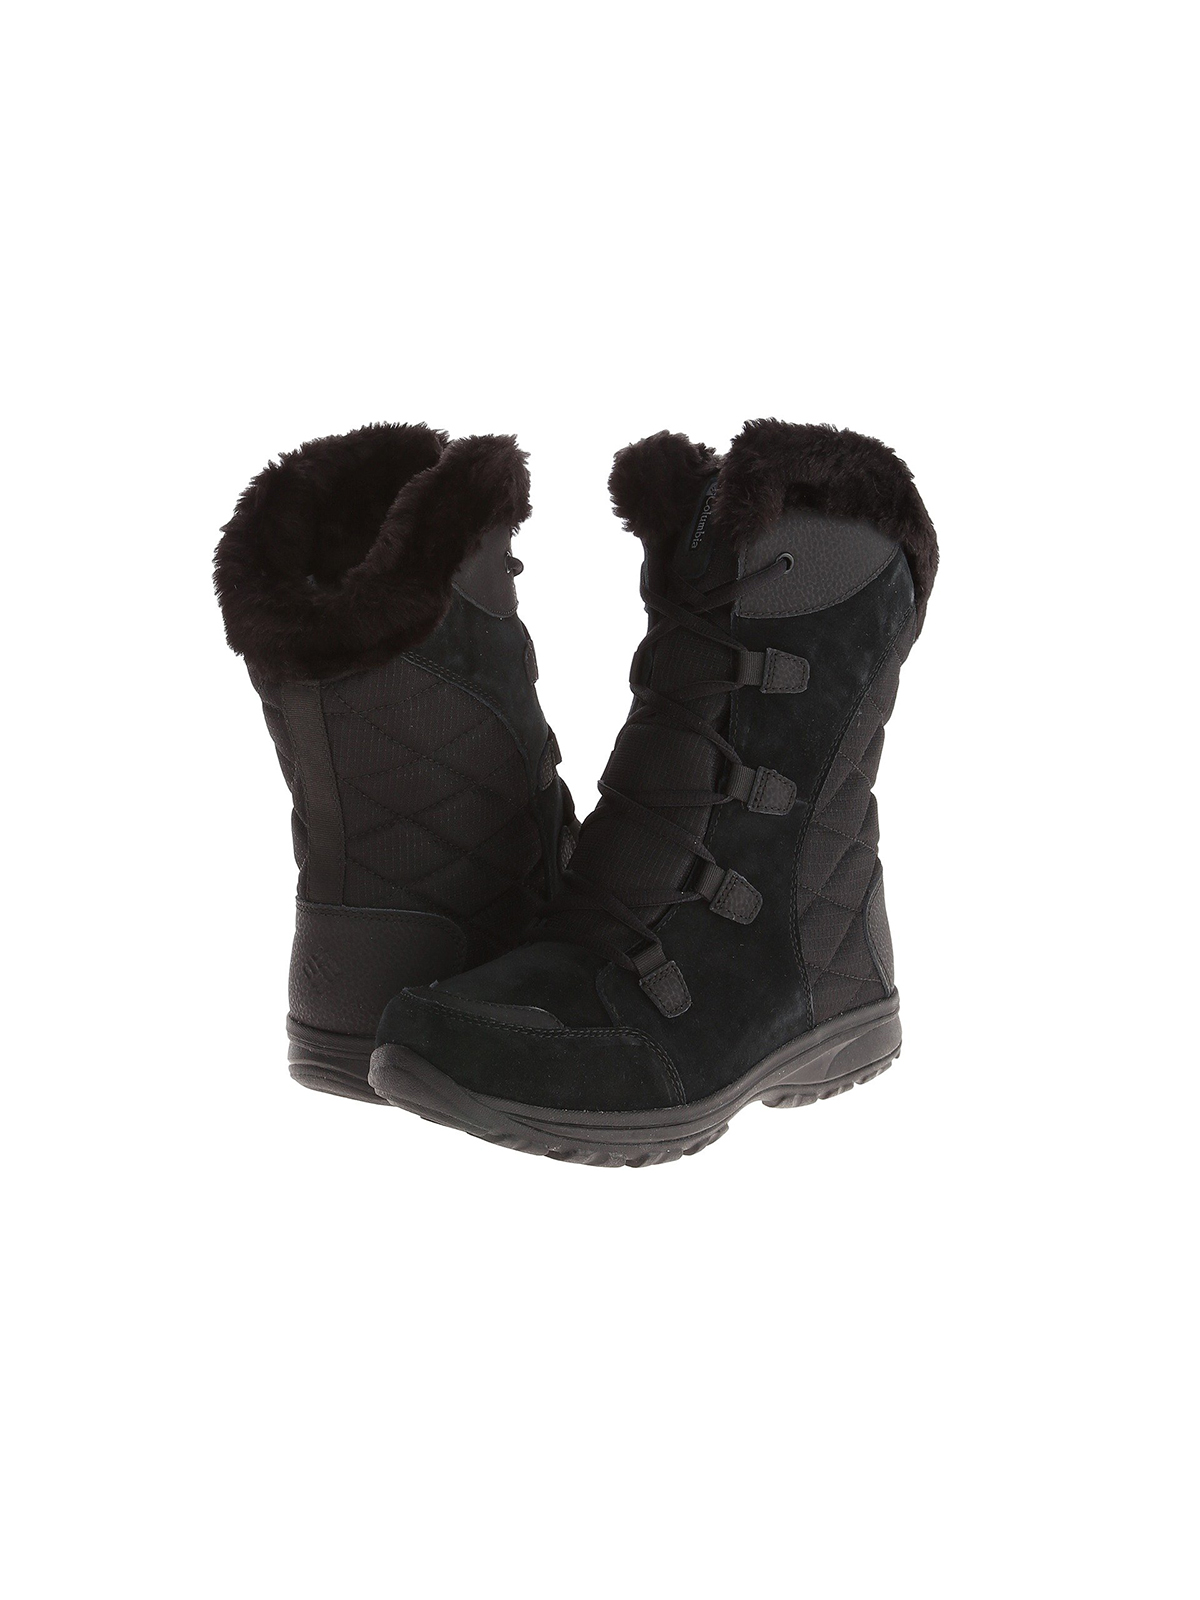 e819116ba035 These Top-Rated Winter Boots Will Keep Your Feet Toasty